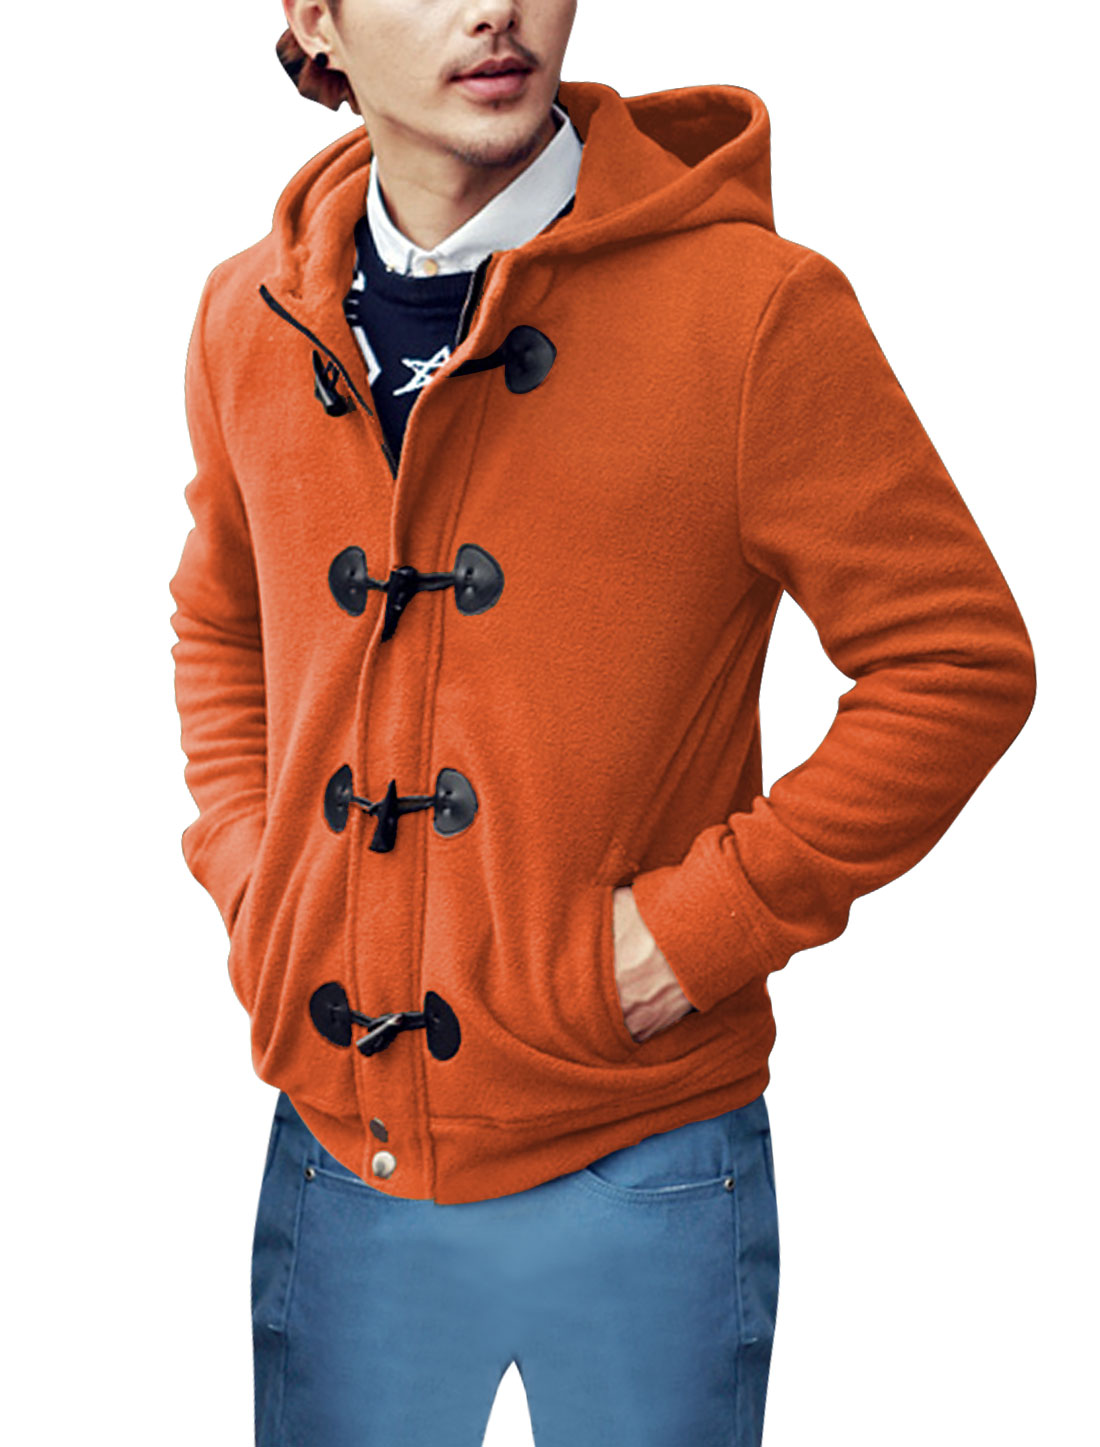 Men Fashion Toggle Buttons Closure Snap Buttons Closed Fleece Jacket Orange M